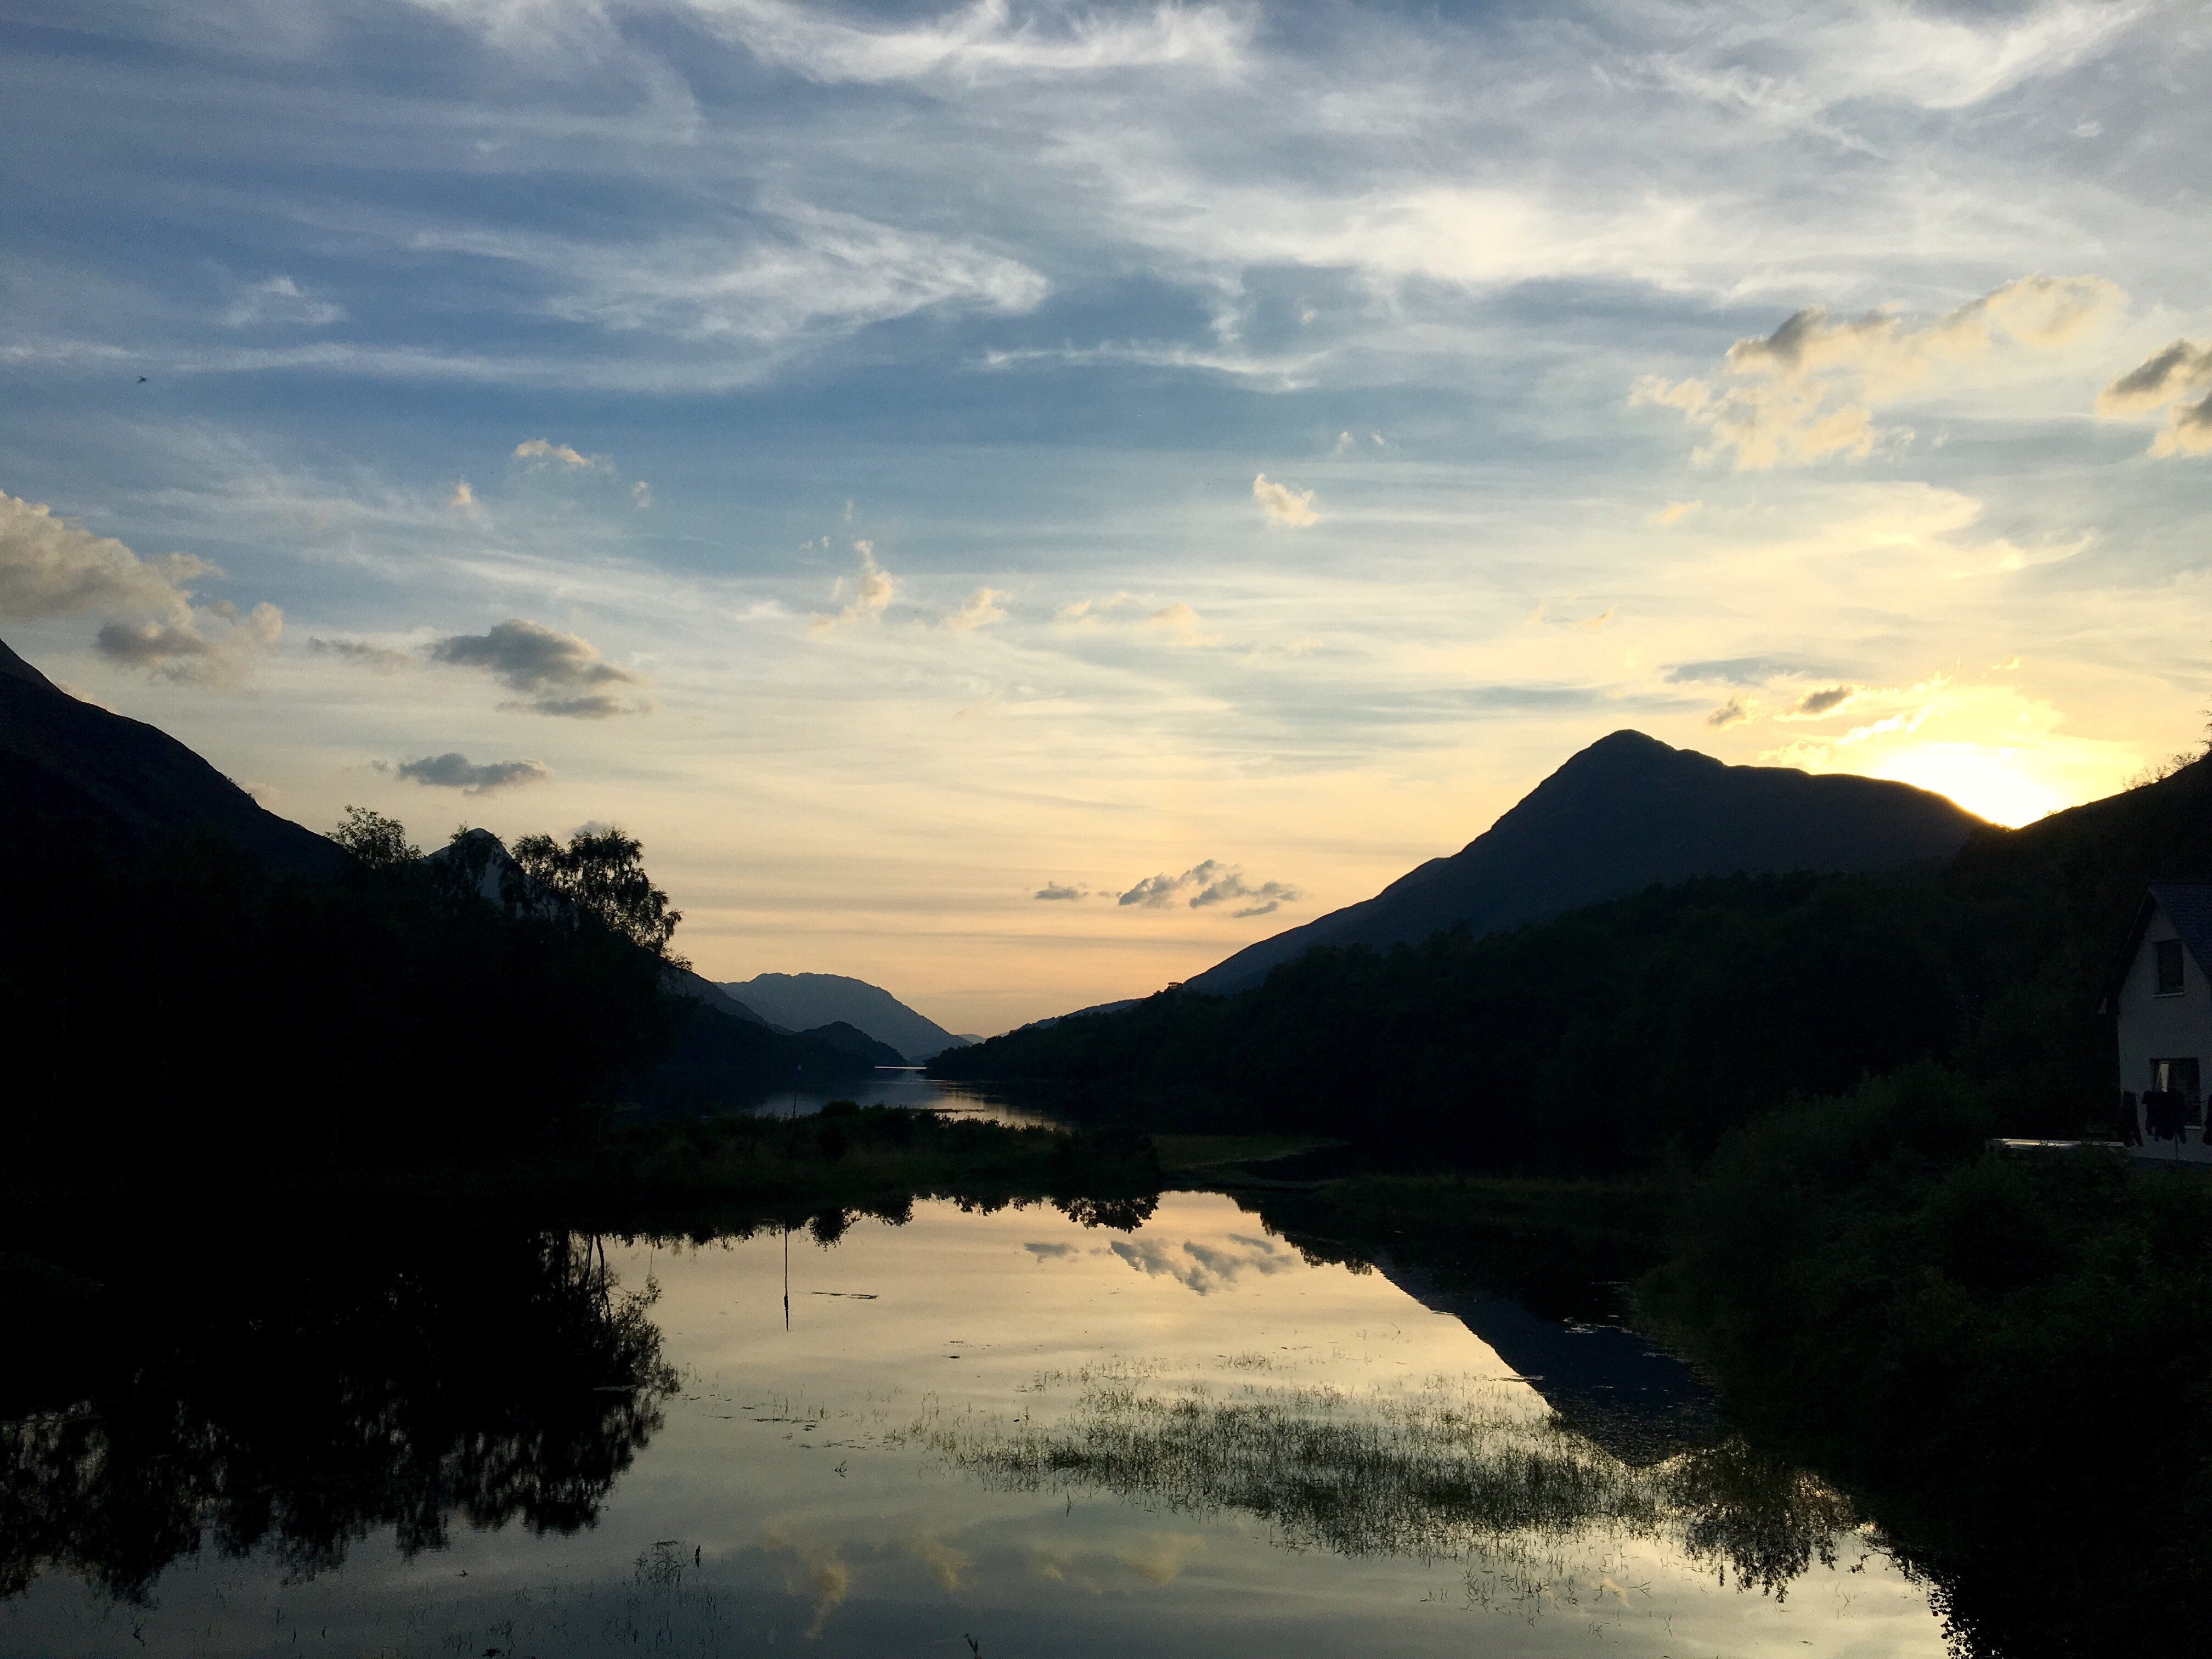 View from deck of the Bothy Bar, Kinlochleven, Scotland